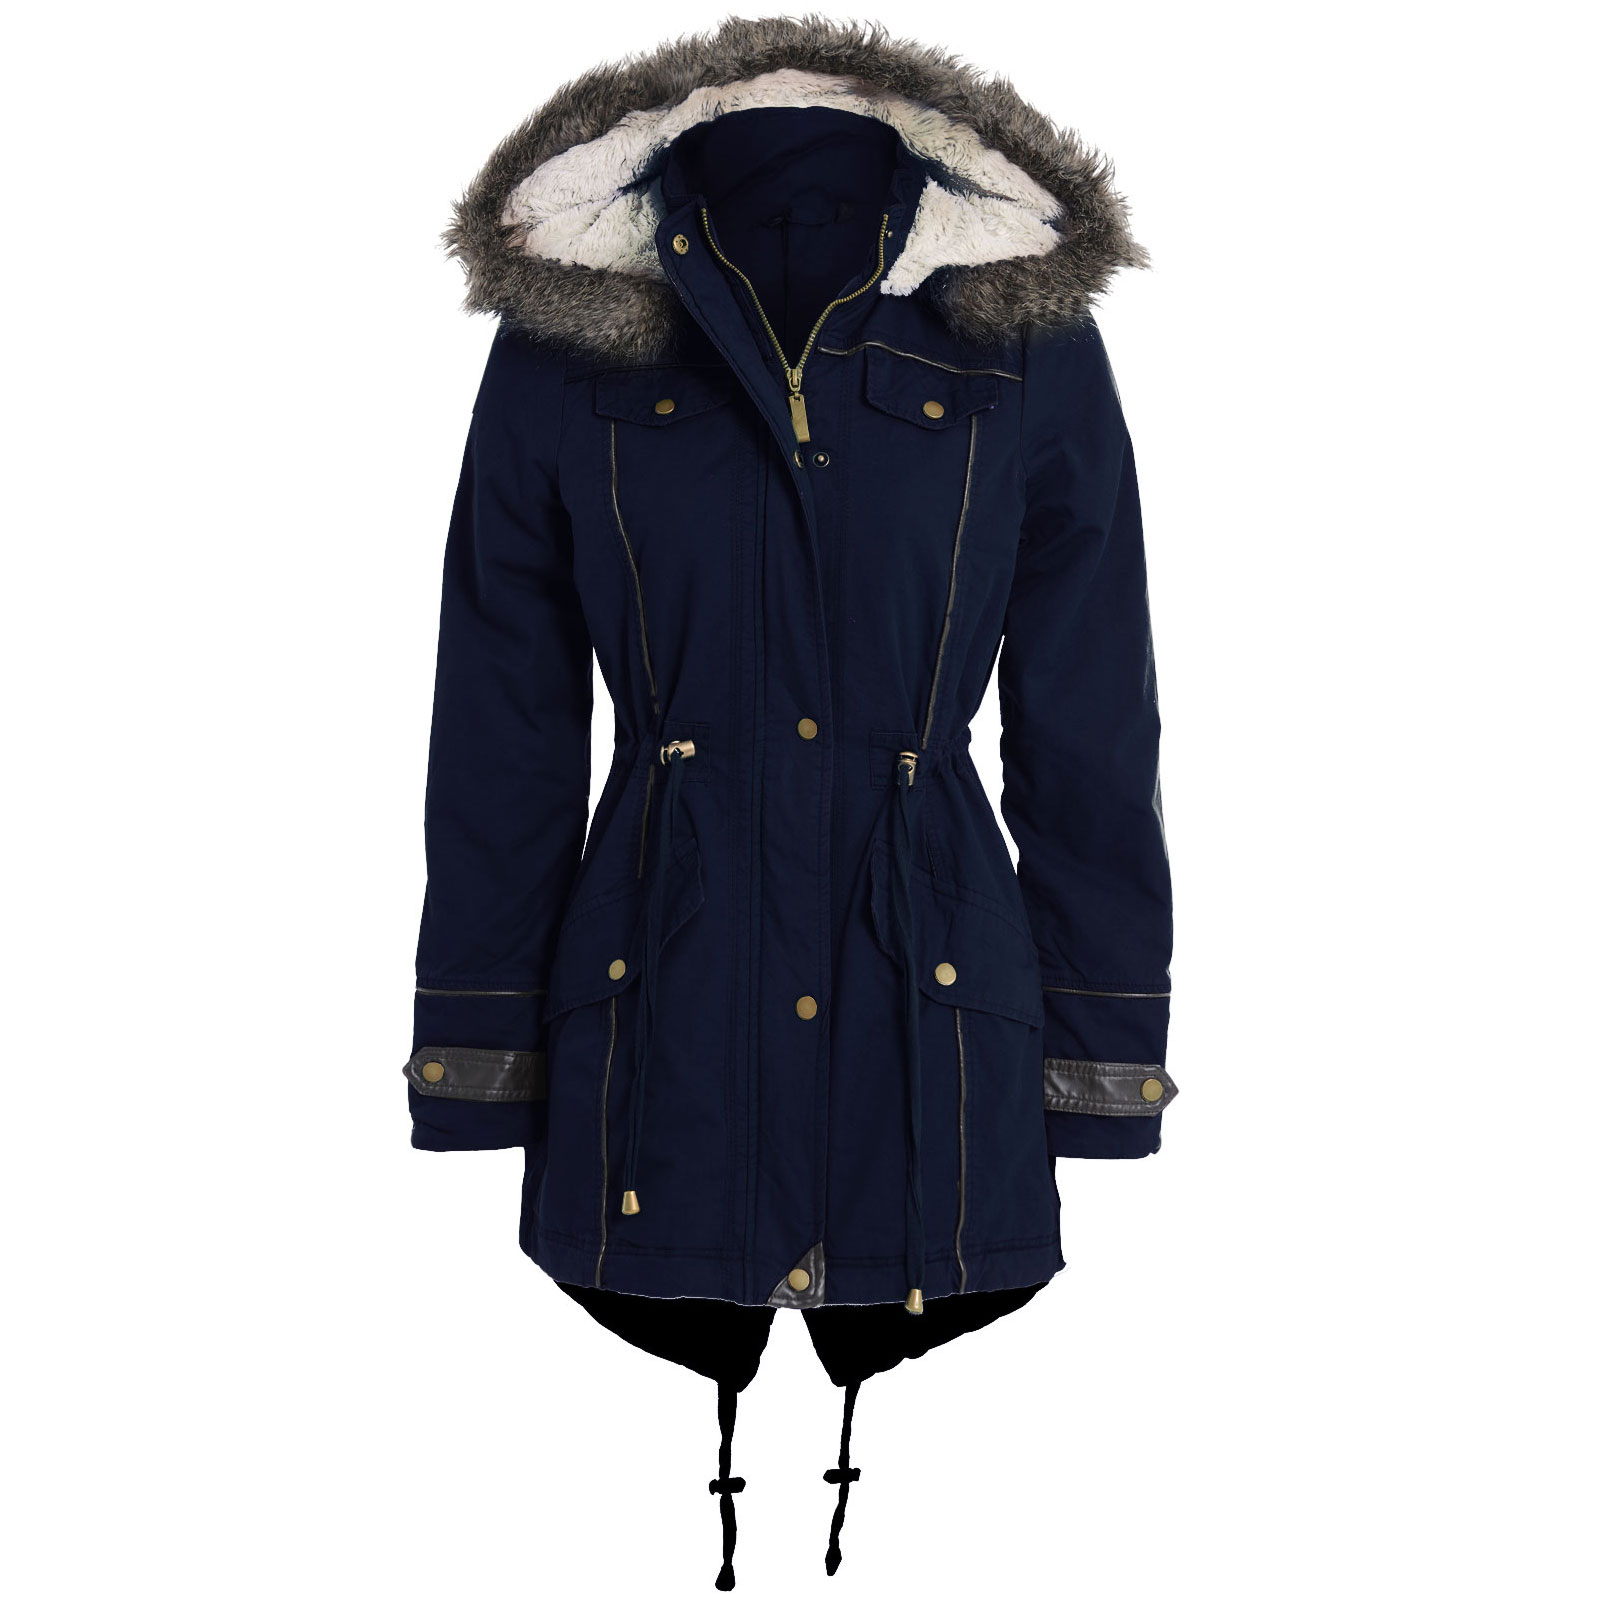 Find a great selection of coats, jackets and blazers for women at metrdisk.cf Shop winter coats, peacoats, raincoats, as well as trenches & blazers from brands like Topshop, Canada Goose, The North Face & more. Free shipping & returns.